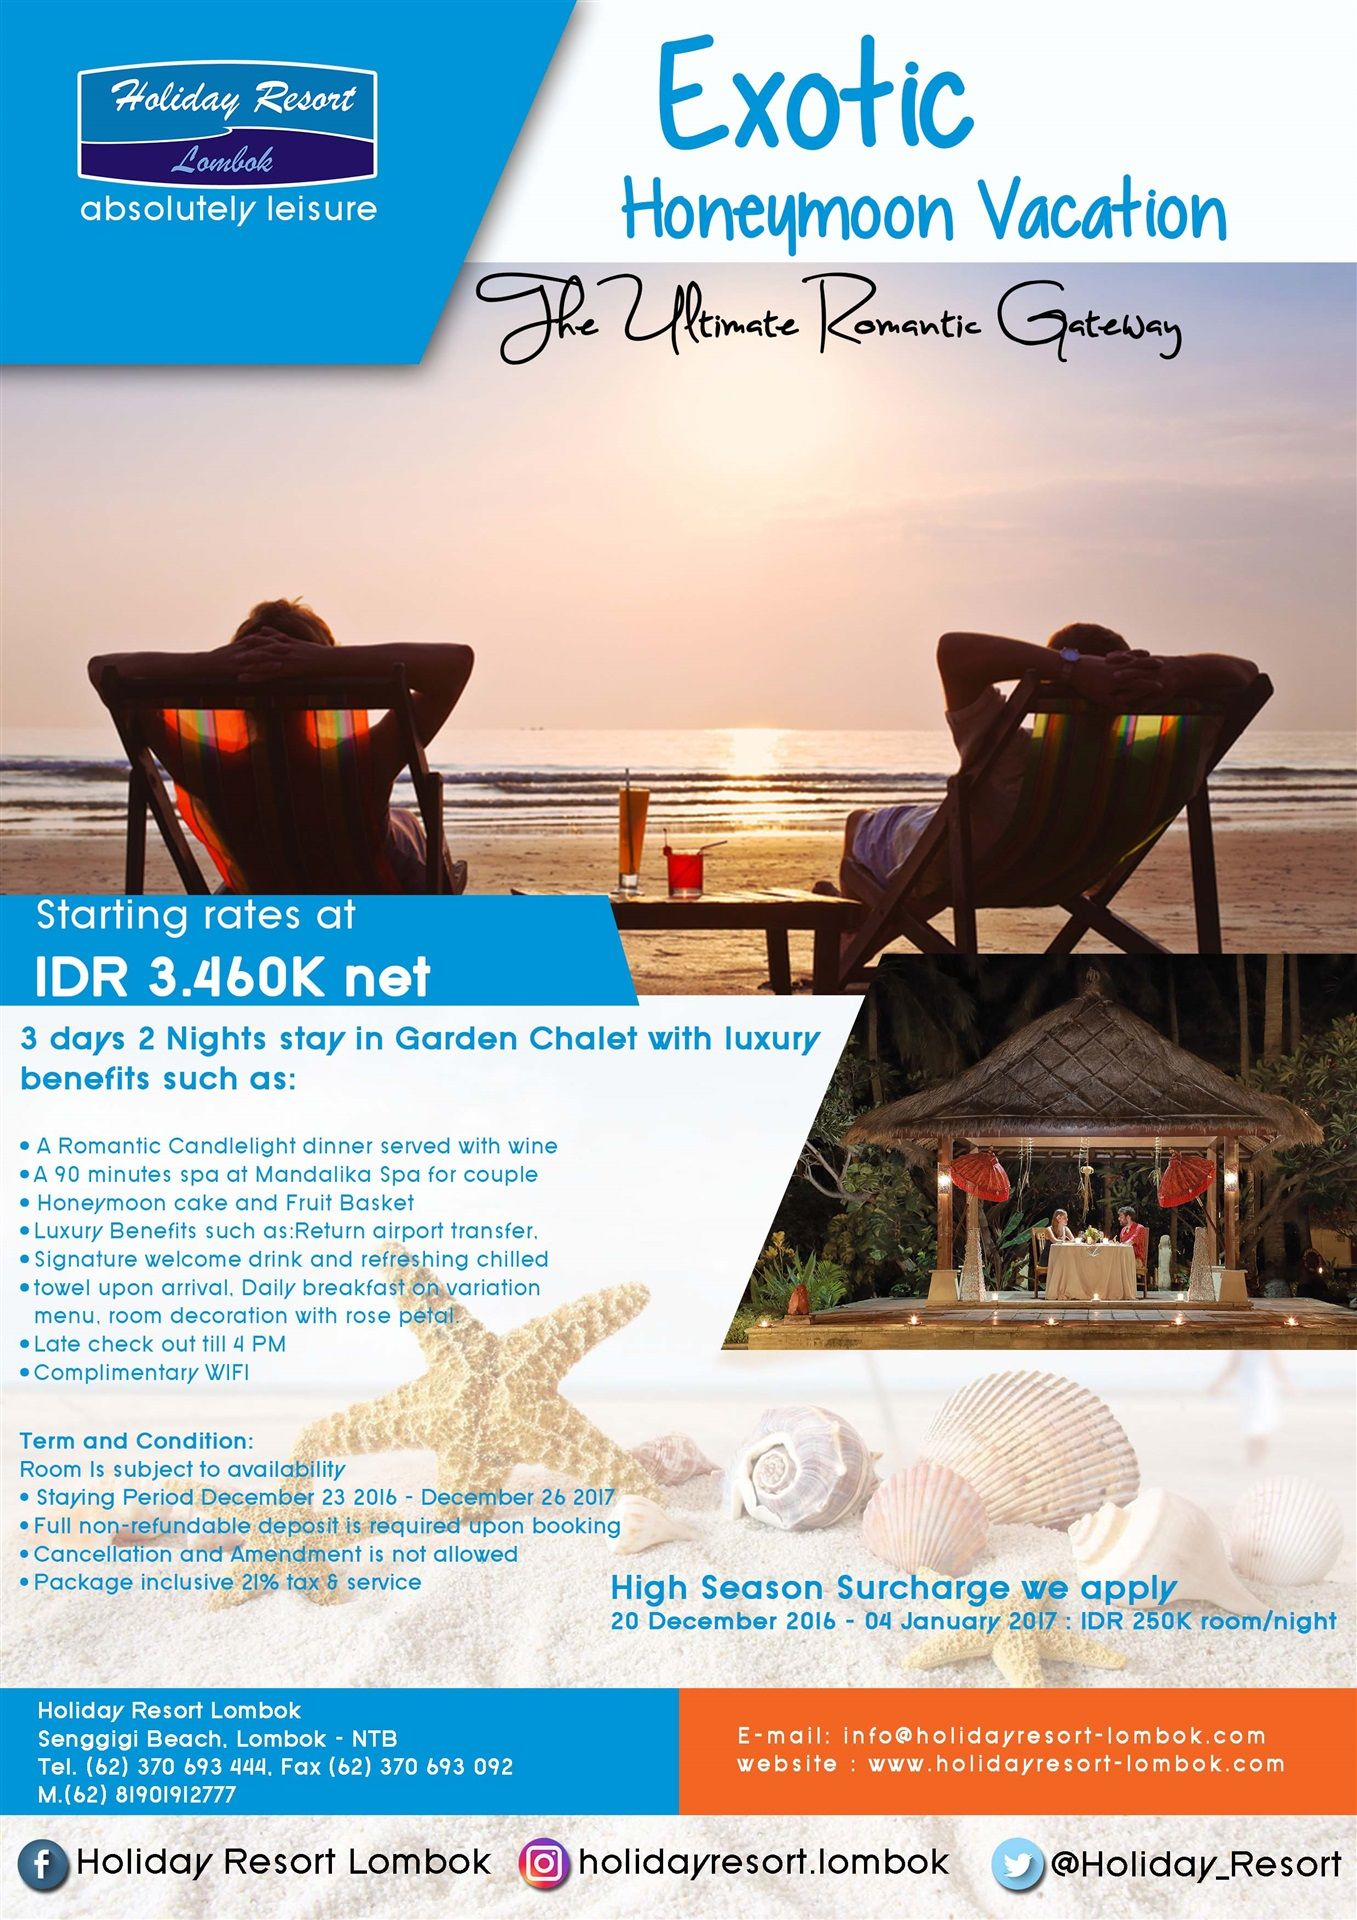 holiday-resort-lombok_exotic-honeymoon-vacation-2016-1